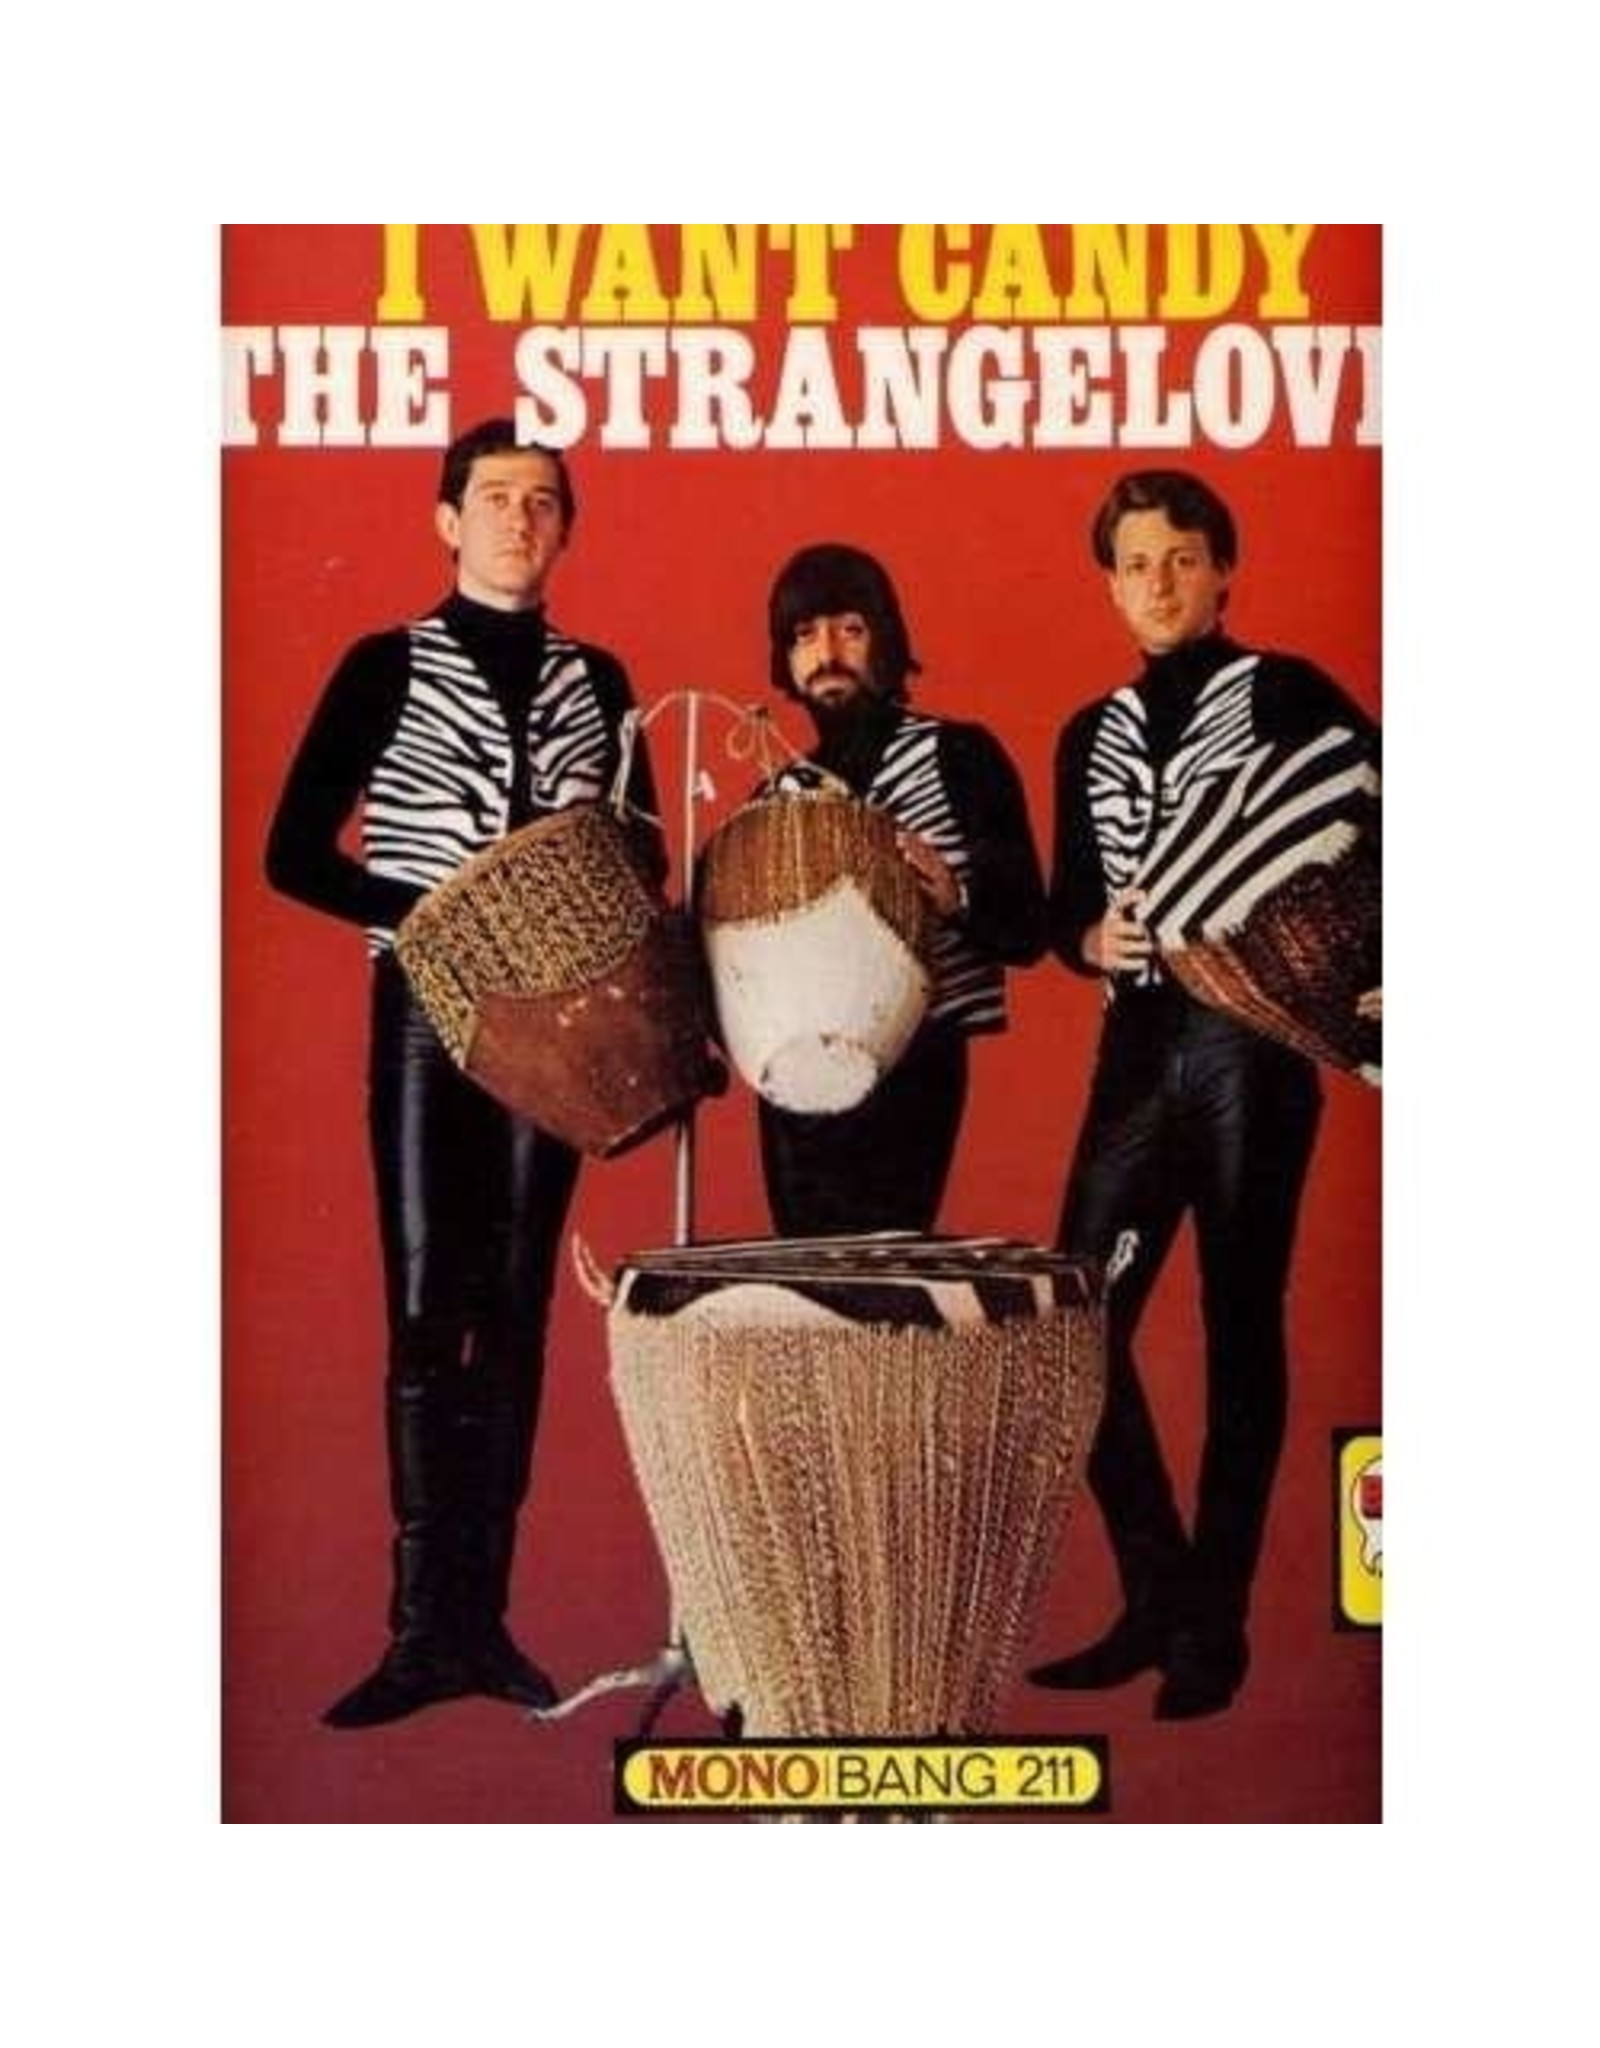 New Vinyl The Strangeloves - I Want Candy LP